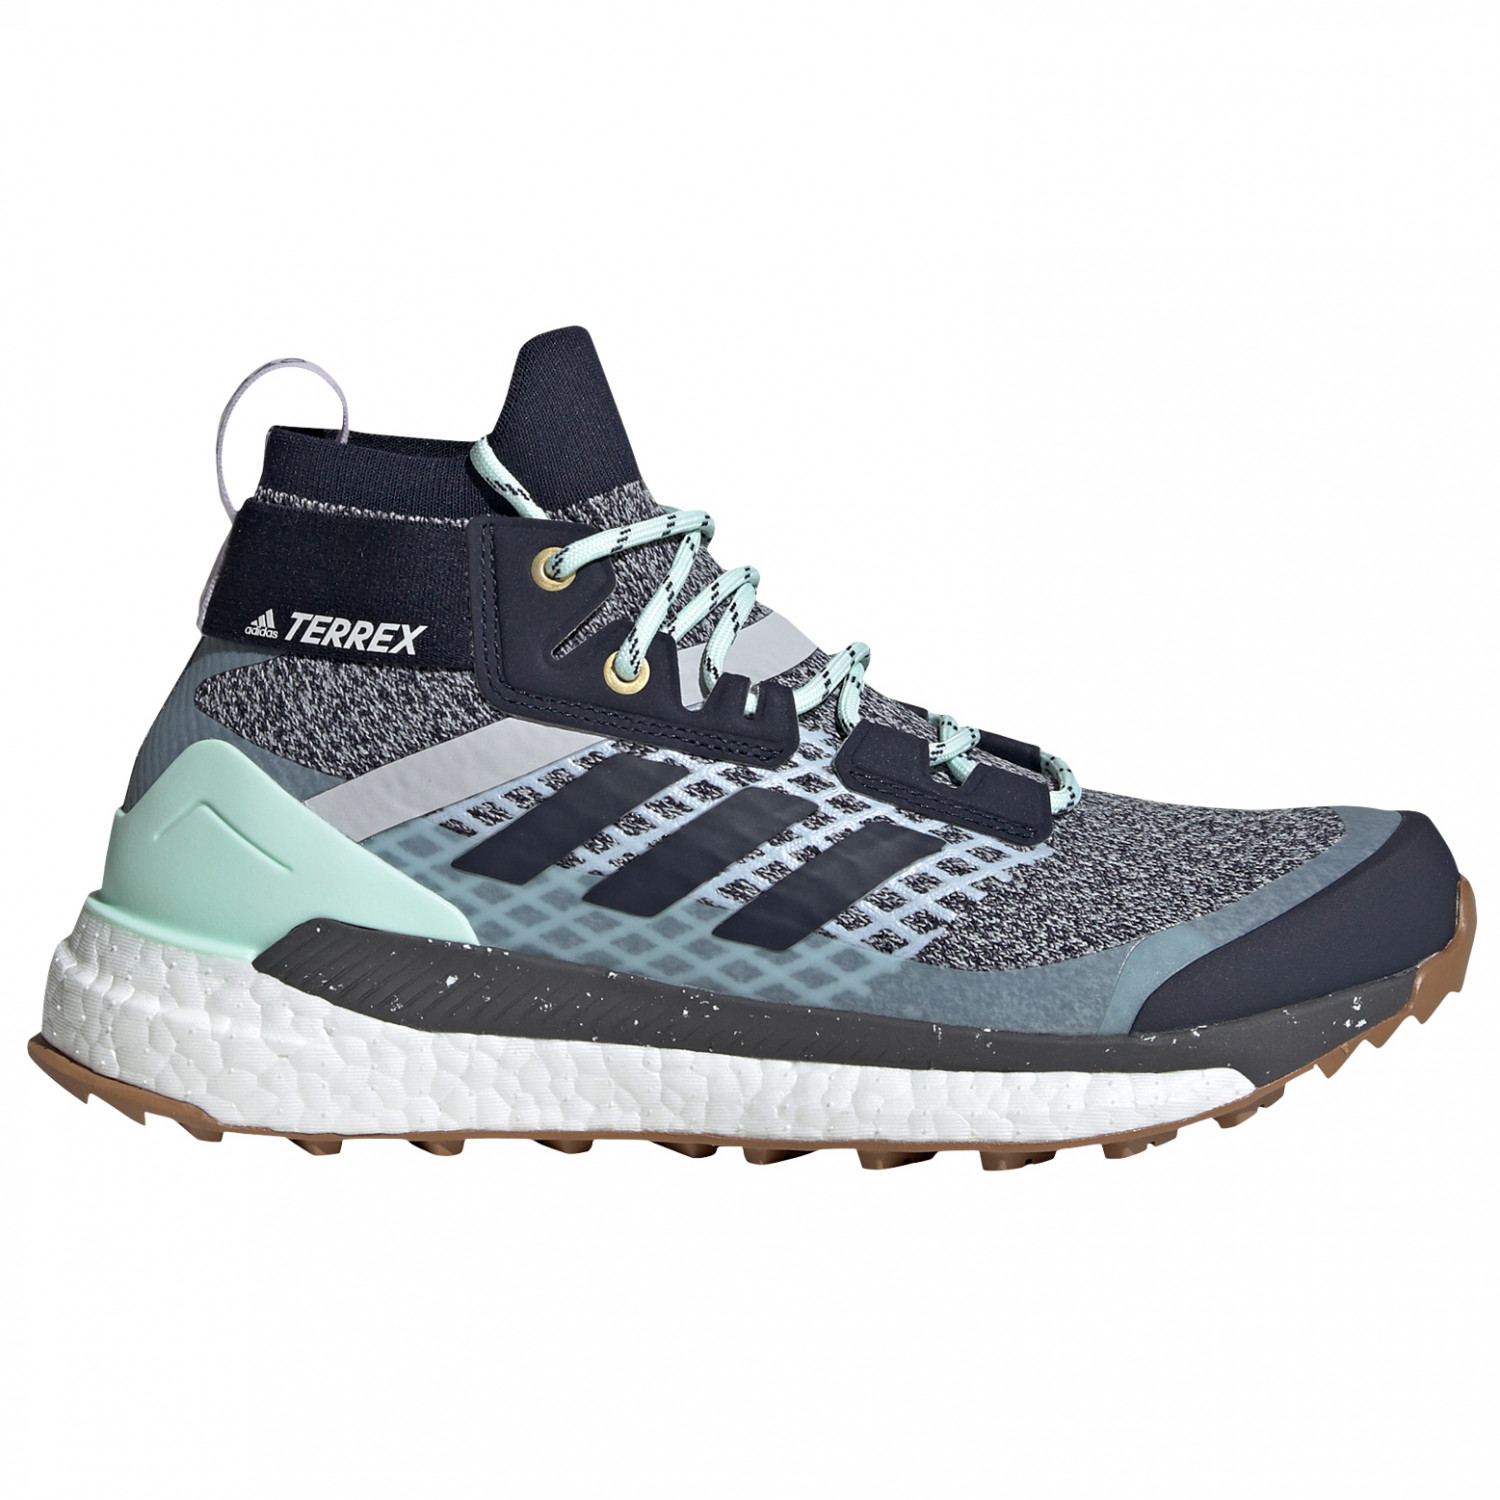 adidas - Women's Terrex Free Hiker - Walking boots - Carbon / Blutin / Ash  Grey | 4 (UK)